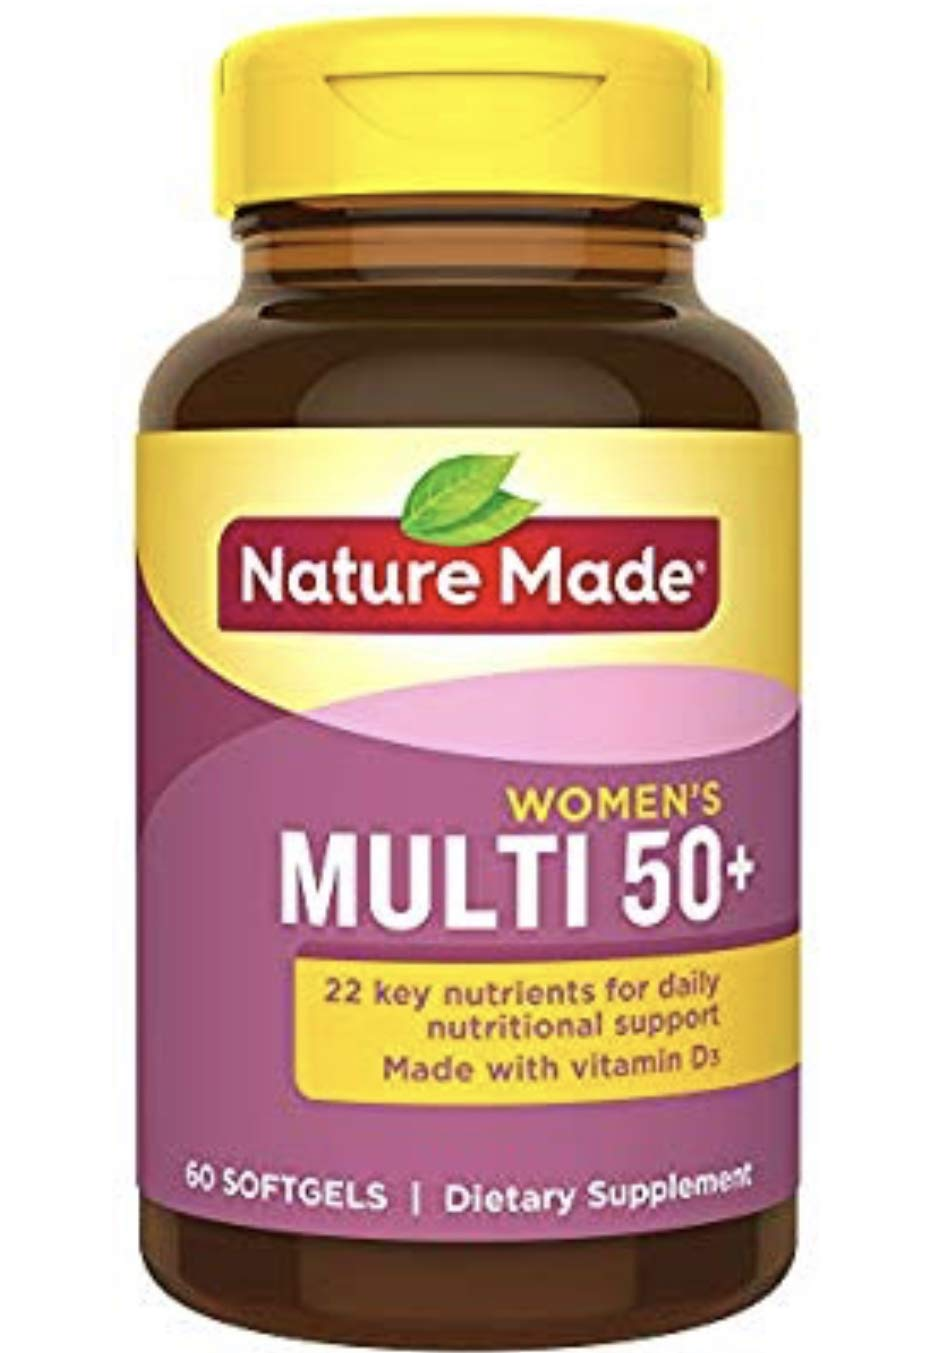 Nature Made Multi for Her 50 Dietary Softgels Original Formula – 60 Ct pack of 3